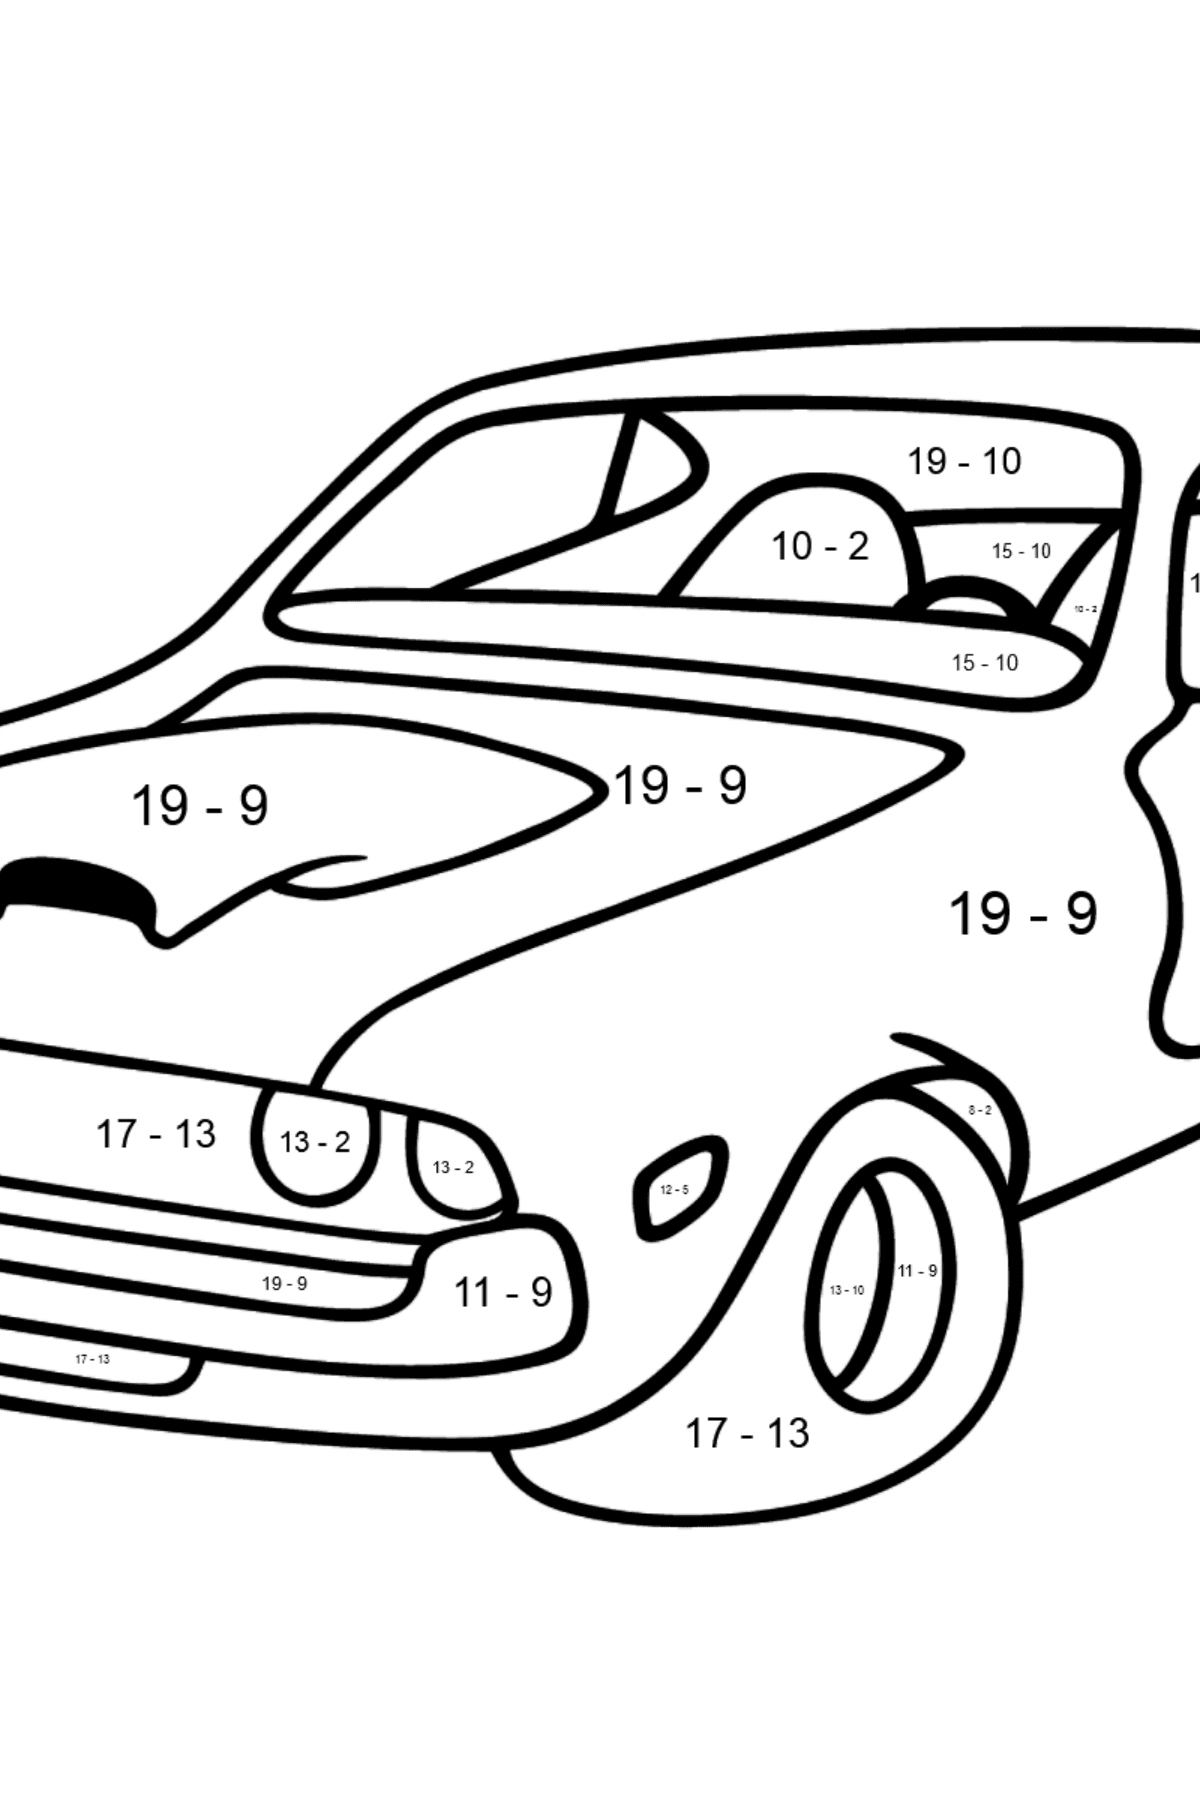 Chevrolet-Chevy Sports Car coloring page - Math Coloring - Subtraction for Kids